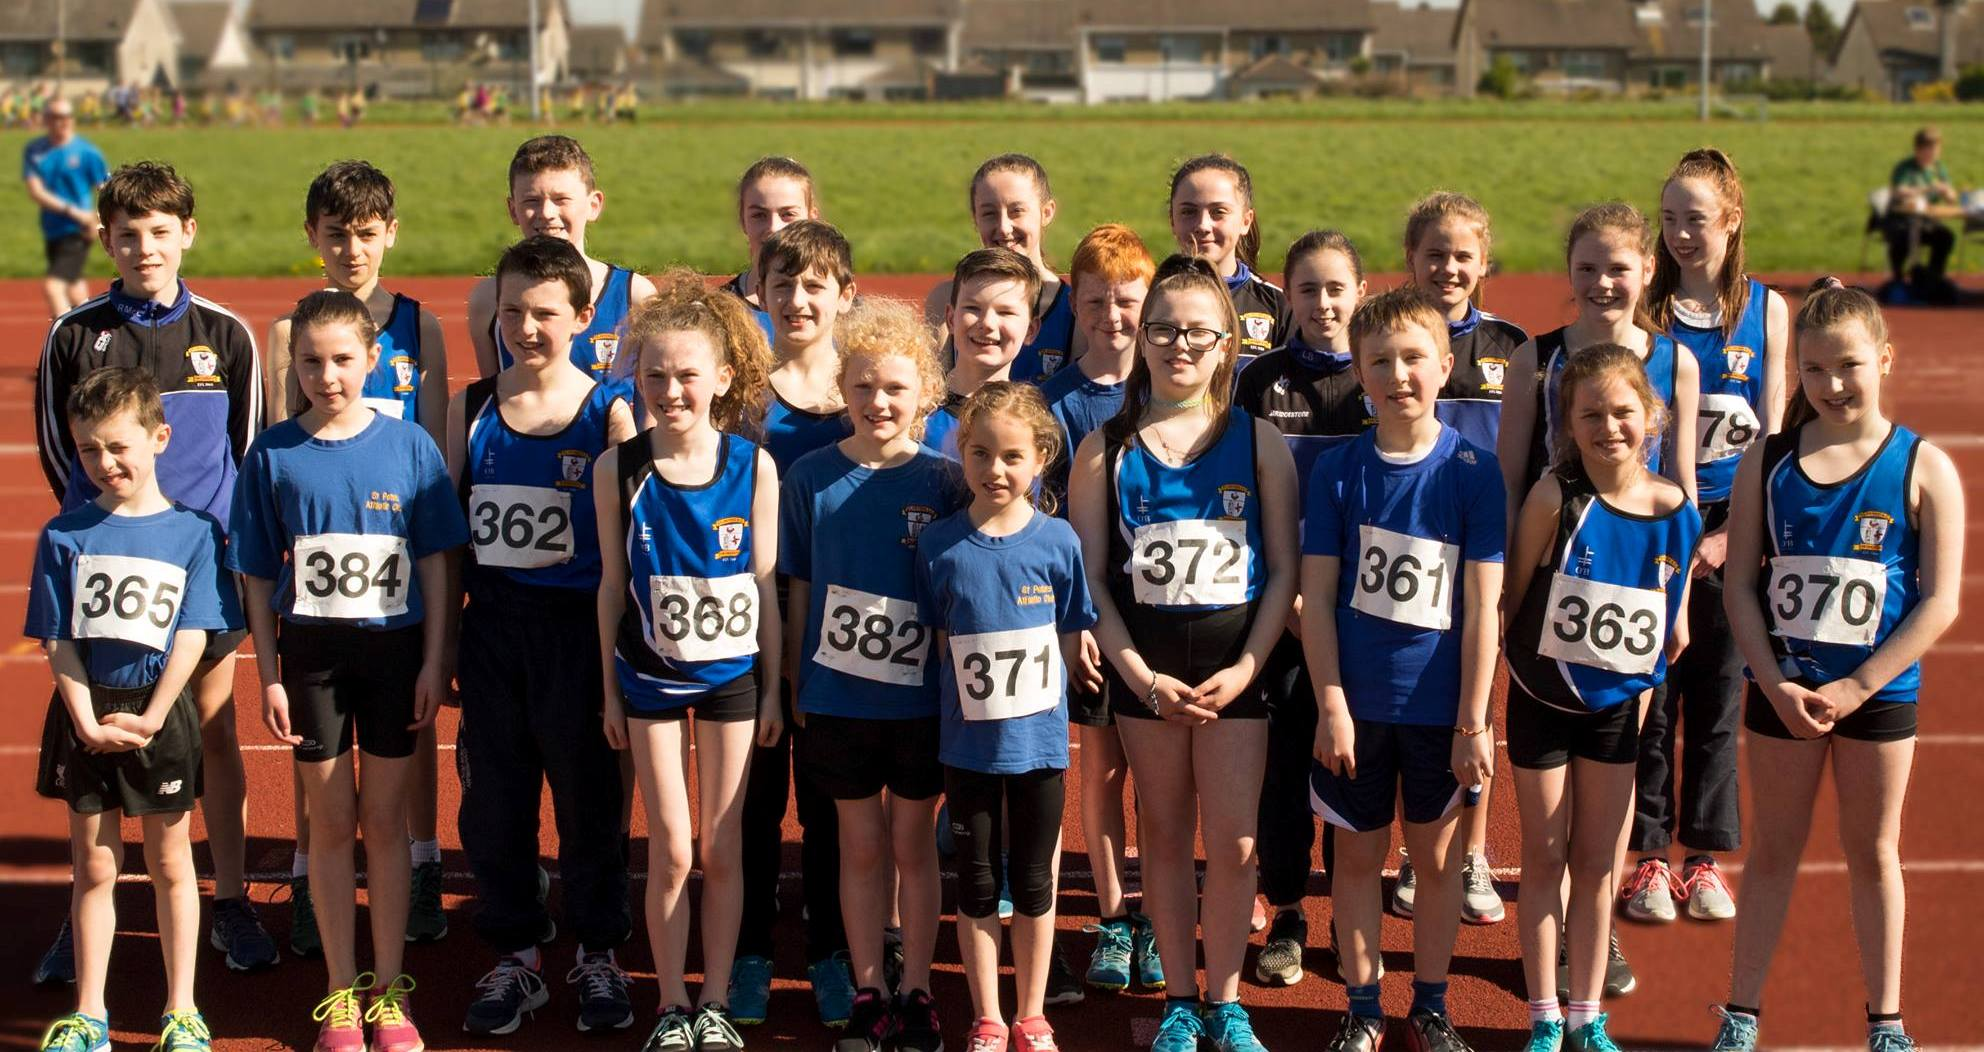 St Peter's AC athletes at Louth Juvenile Pre-Championship Meet (Drogheda, April 2018)